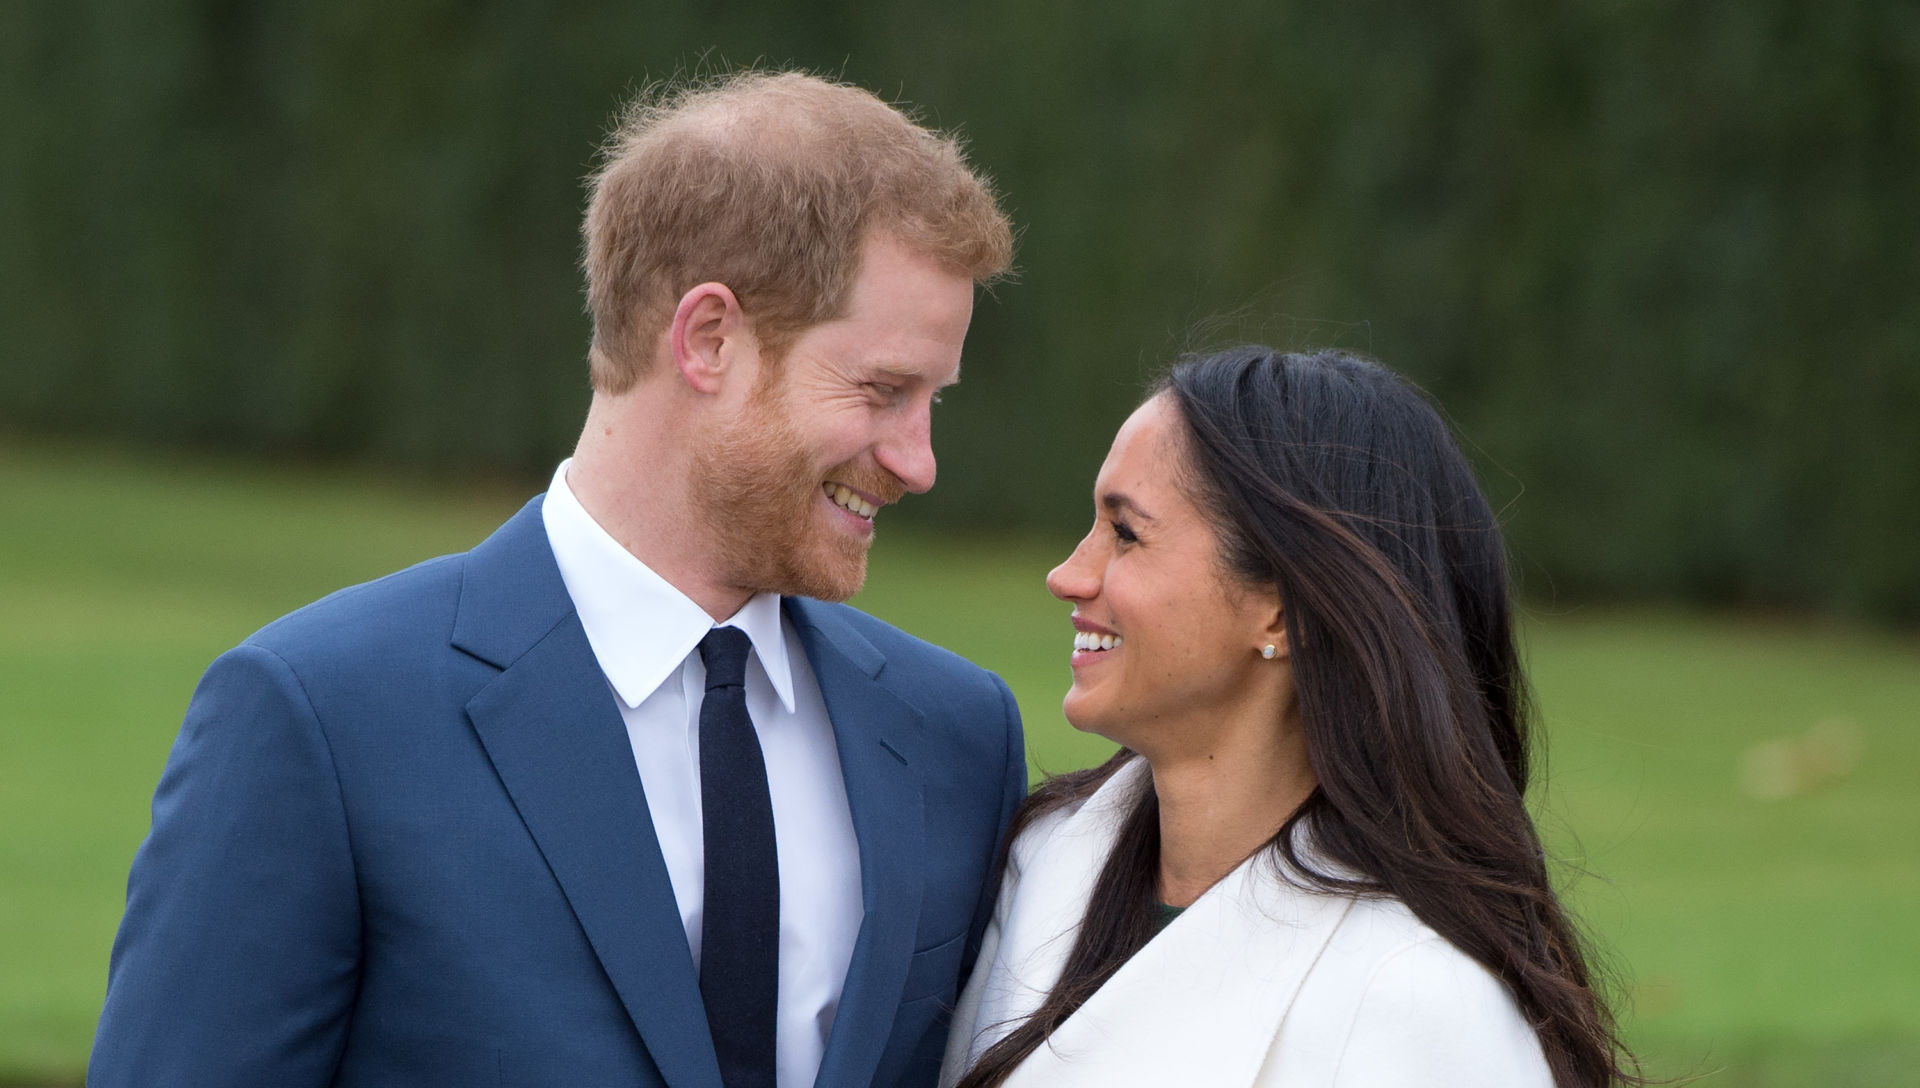 Prince Harry and Meghan Markle, in the Sunken Gardens at Kensington Palace following the announcement of their engagement